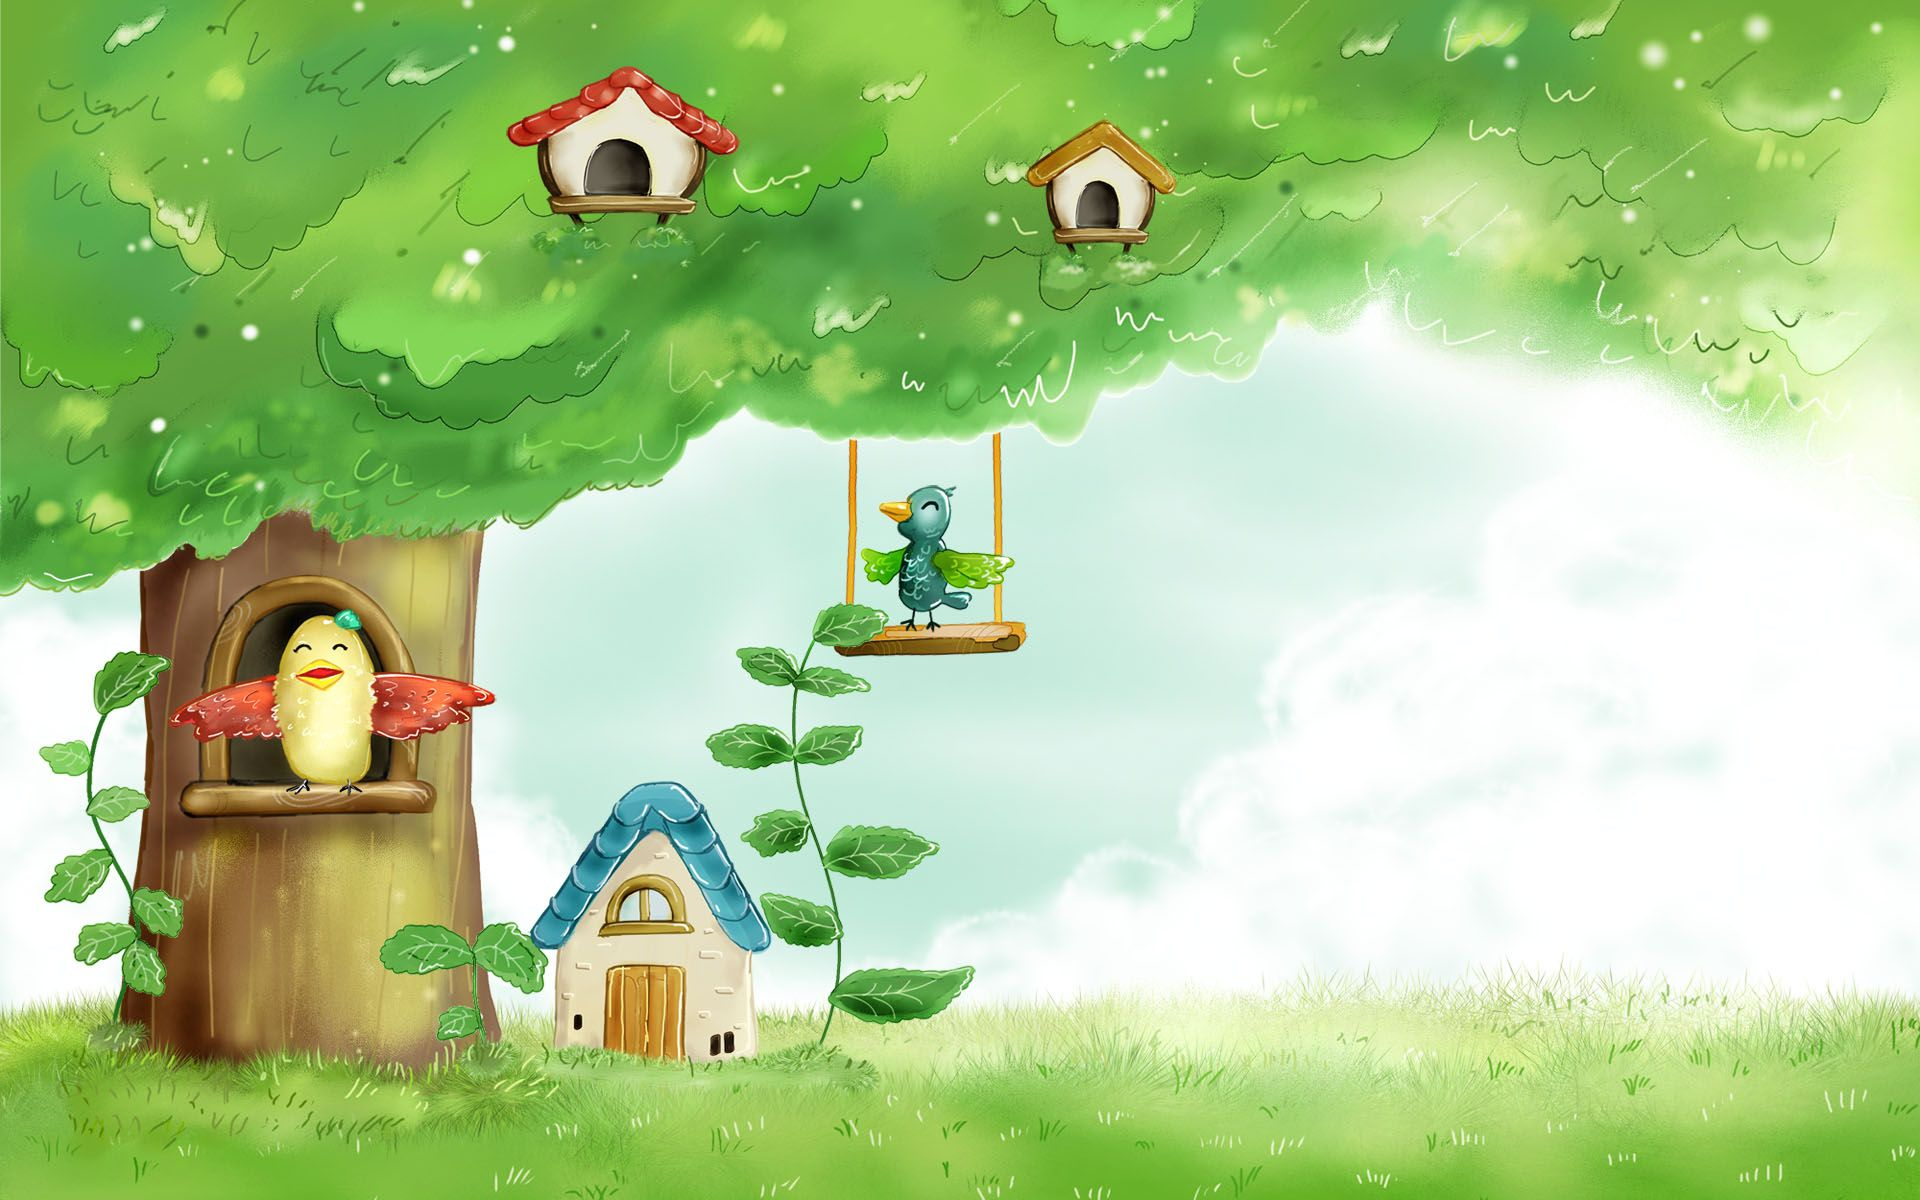 hight resolution of free spring clipart backgrounds cartoon vector illustration spring wallpapers 1920x1200 vector spring